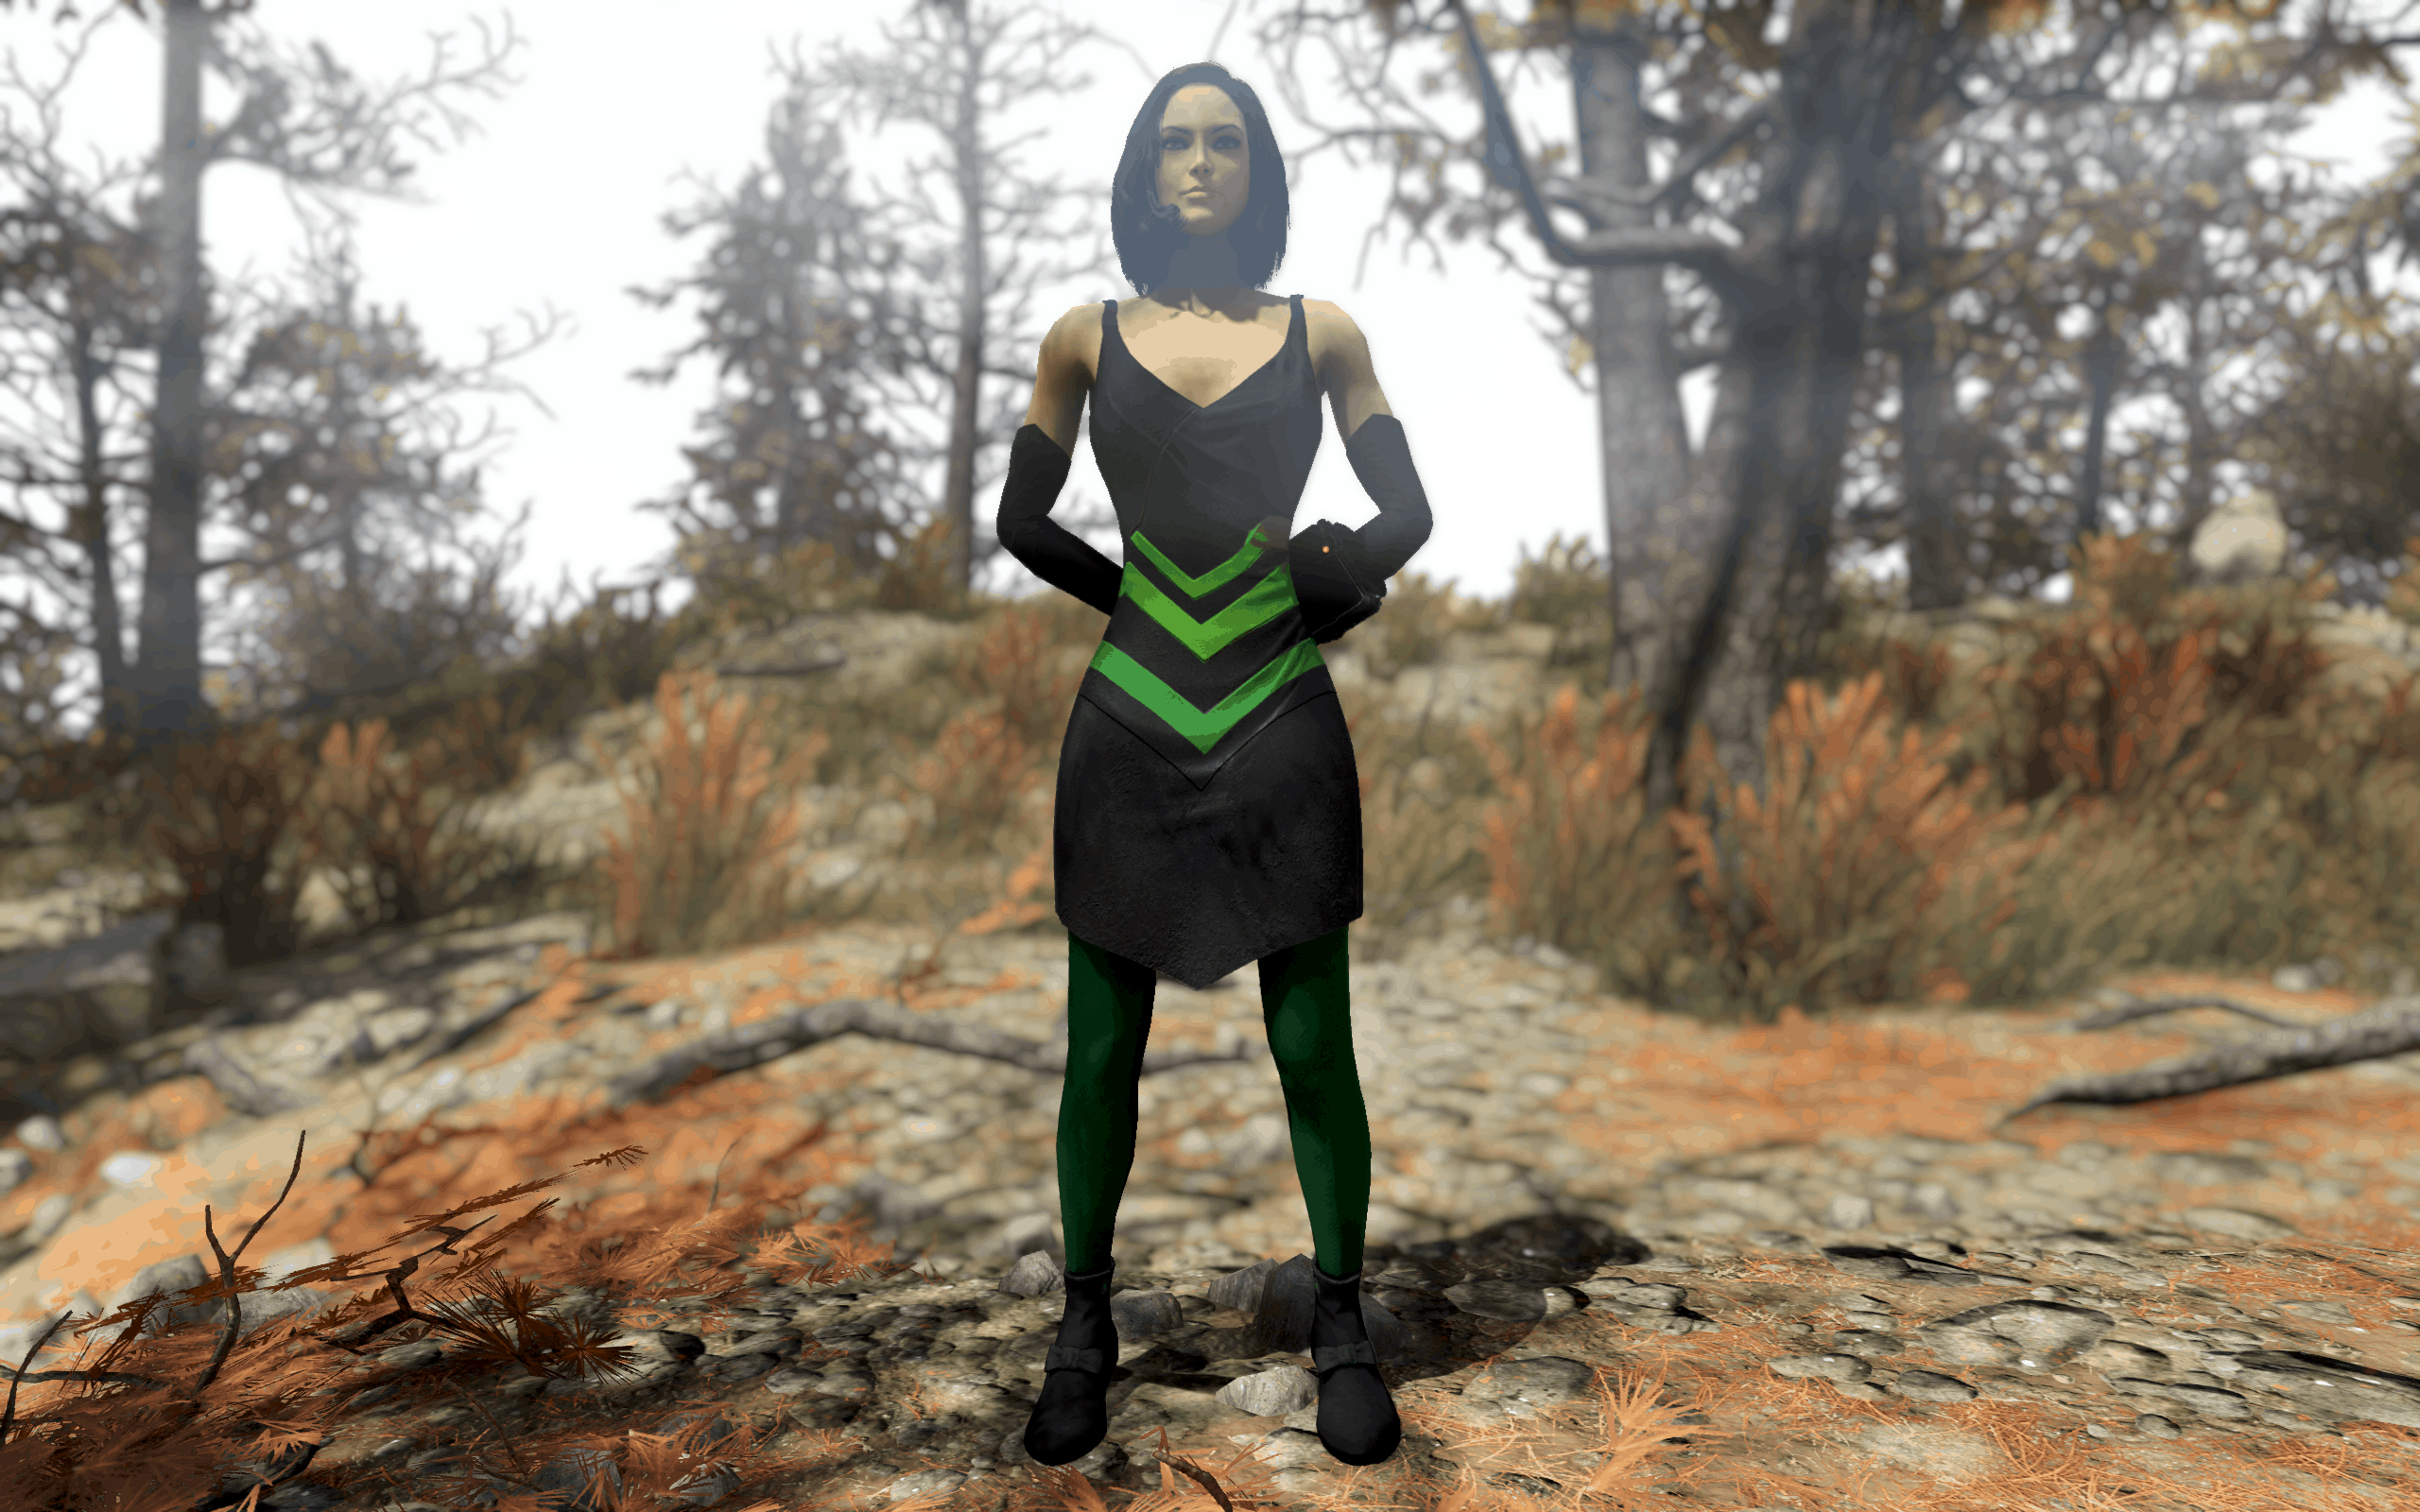 Tattered Dress - 4k Multicolored Edition - Fallout 76 Mod